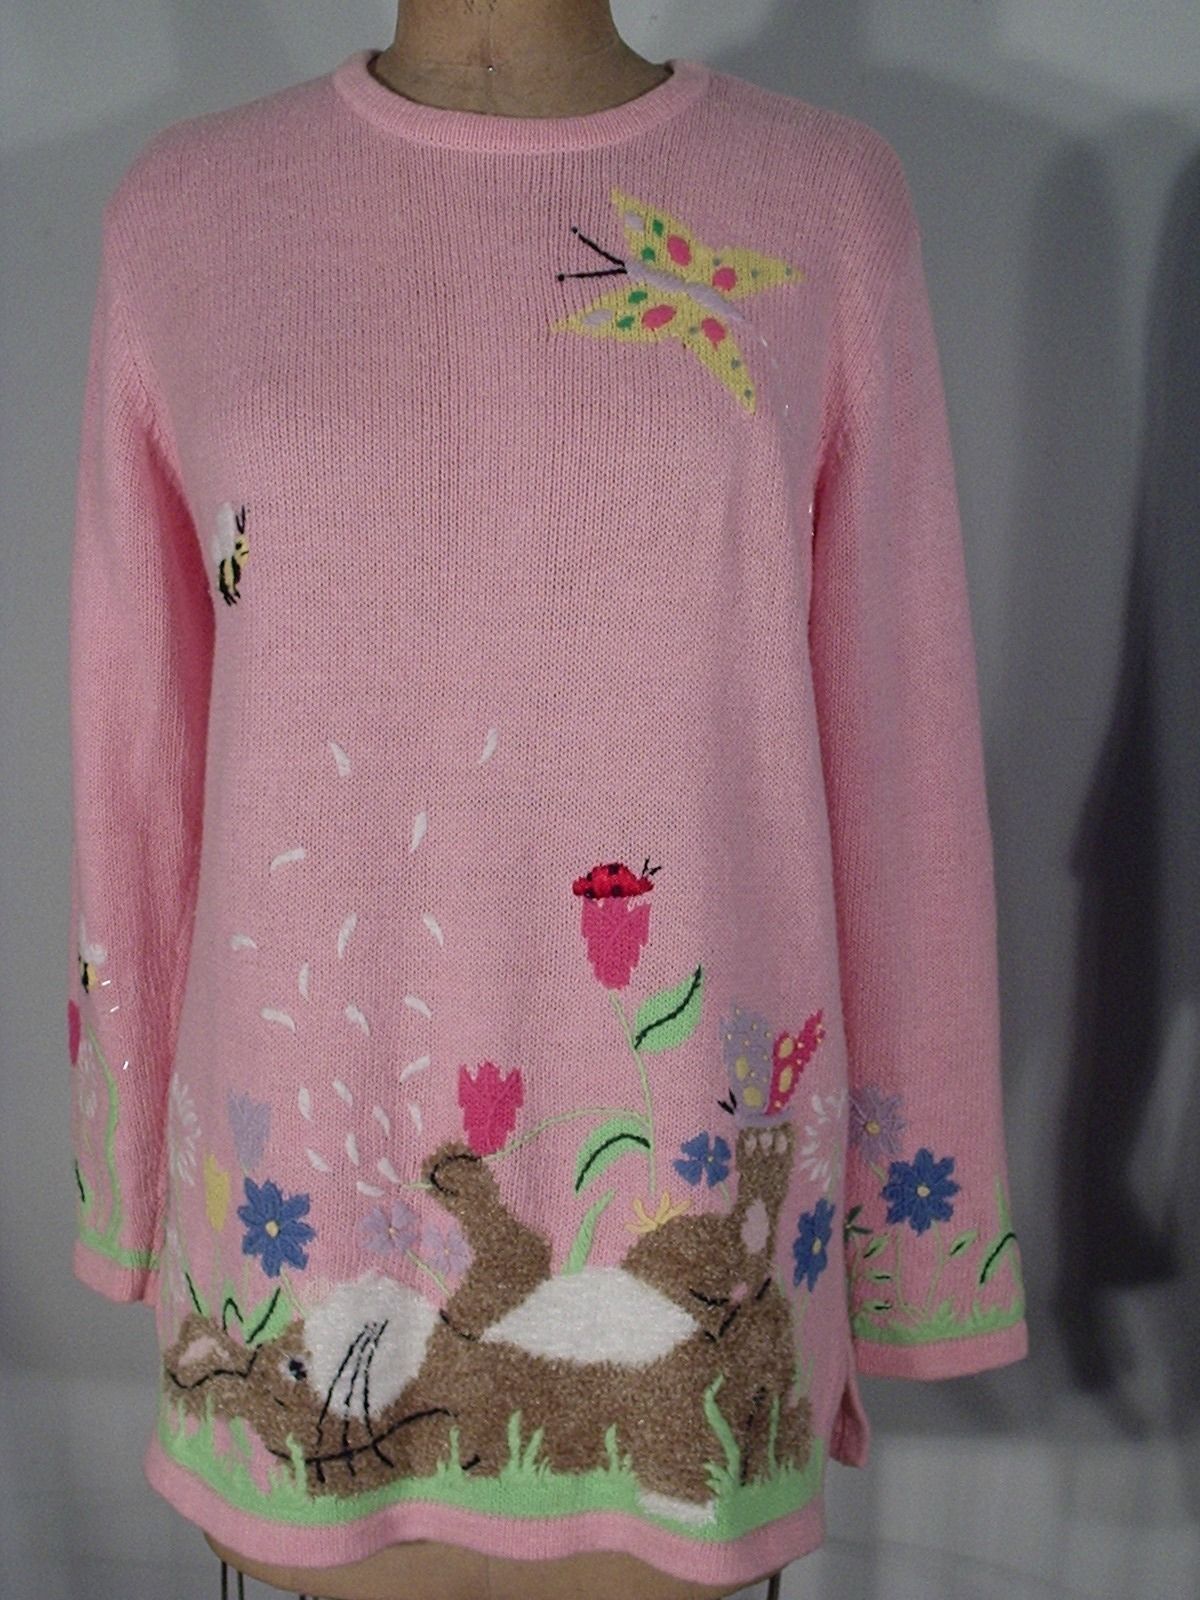 Quacker Factory Ugly Easter Sweater on auction at eBay currently at